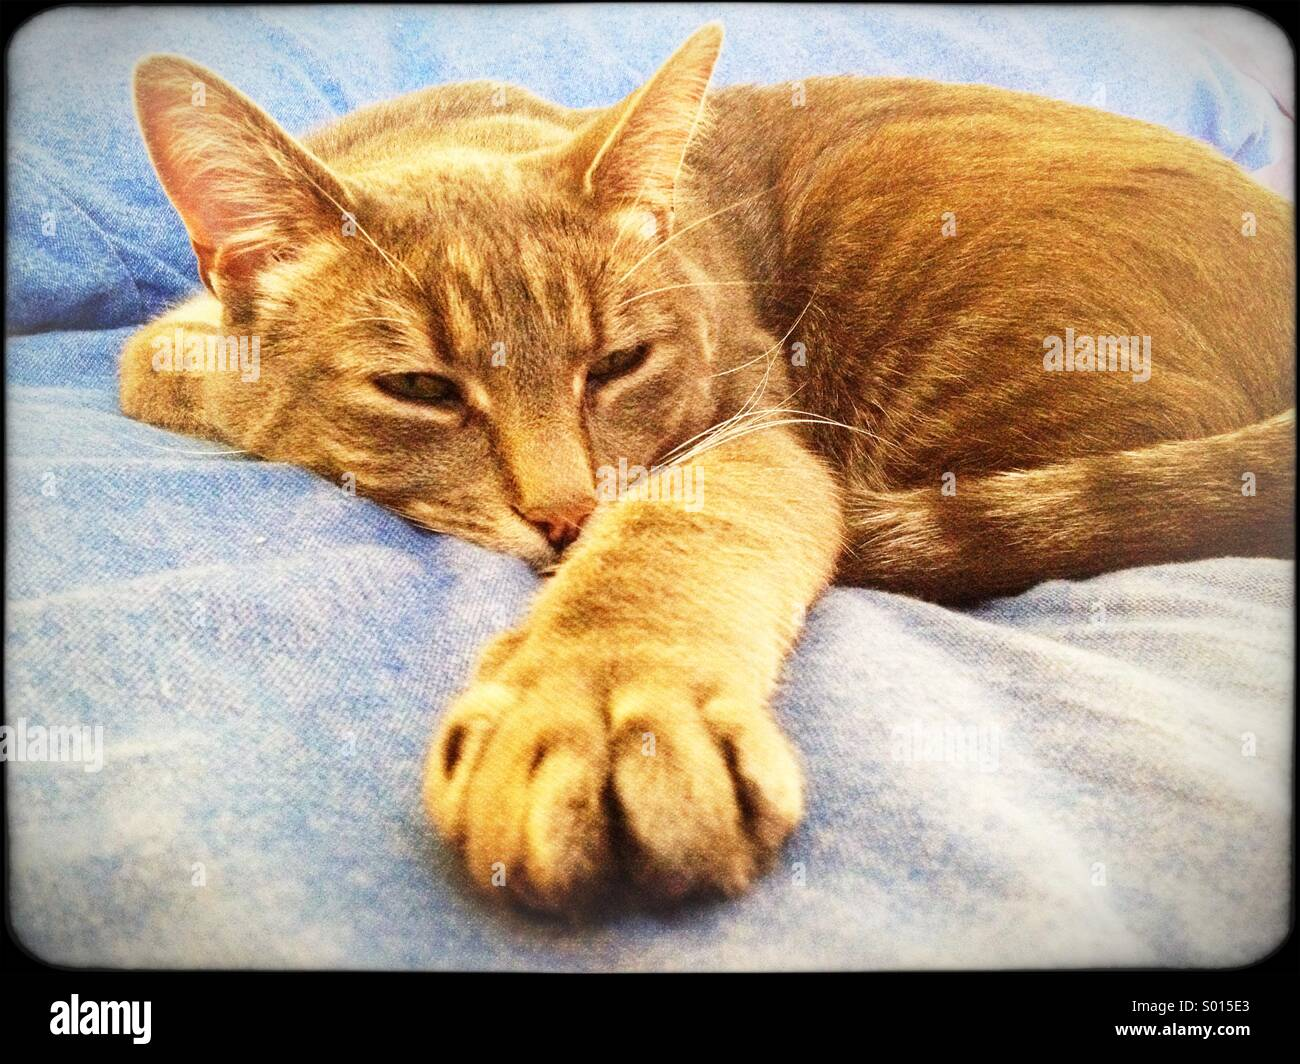 Tabby cat dozing on blue sheets - Stock Image